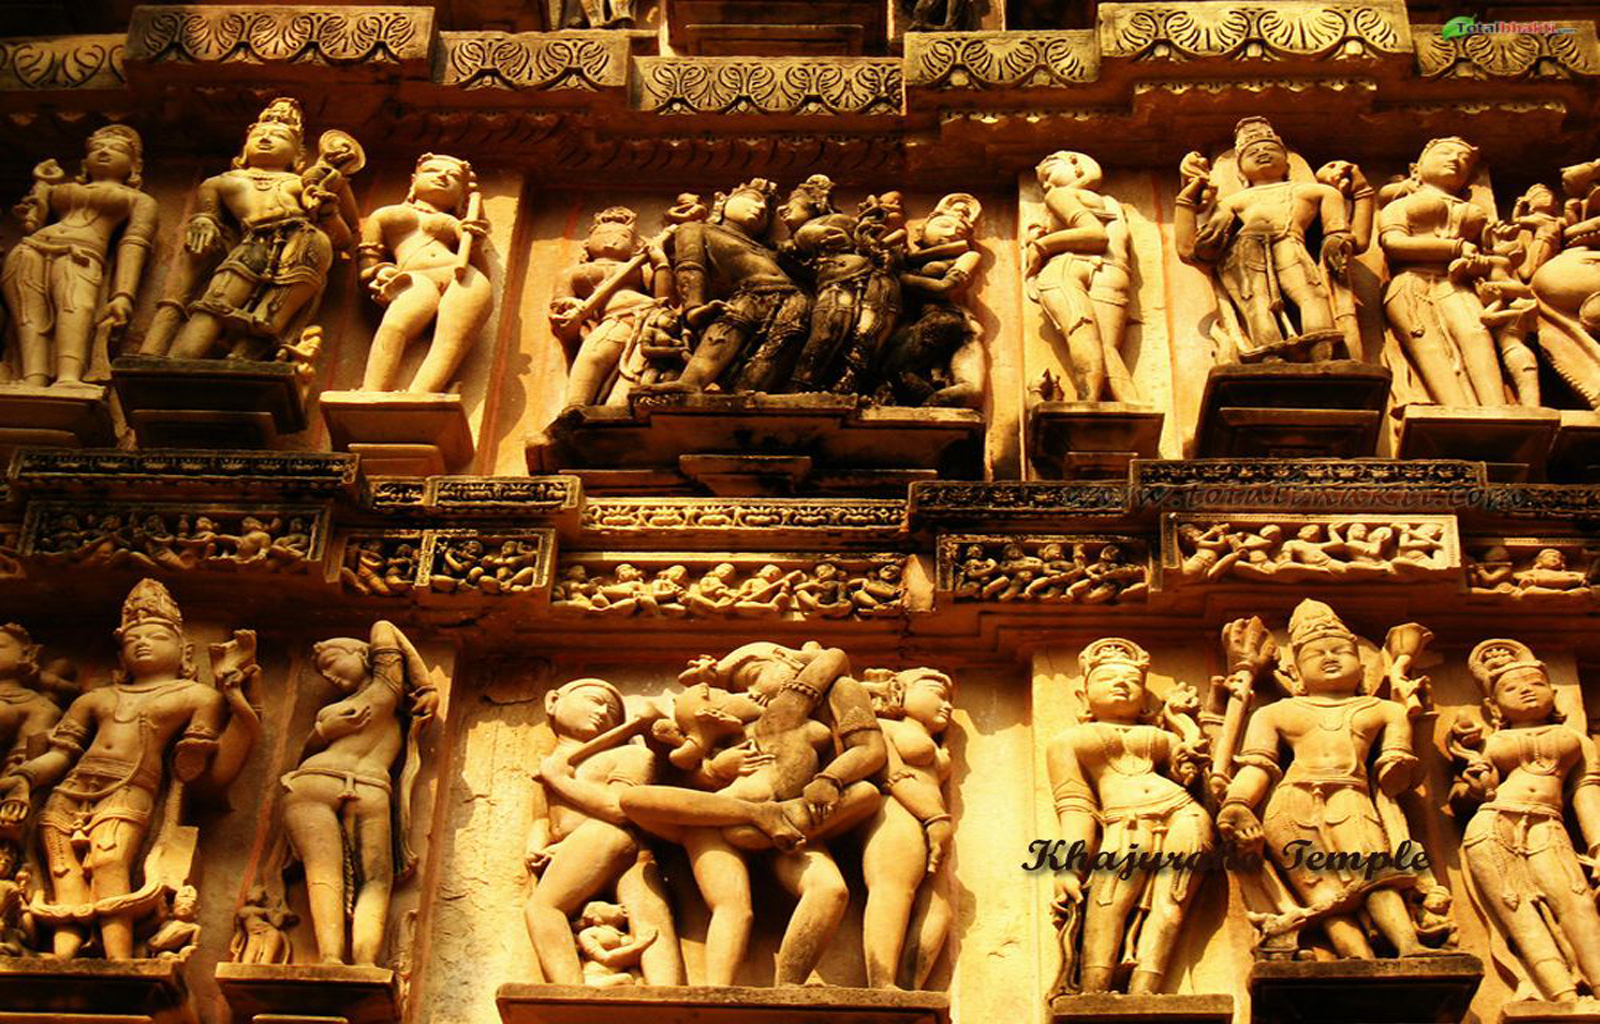 the khajuraho temples A unesco world heritage site, the khajuraho temples in madhya pradesh are amongst the most beautiful medieval monuments in india.